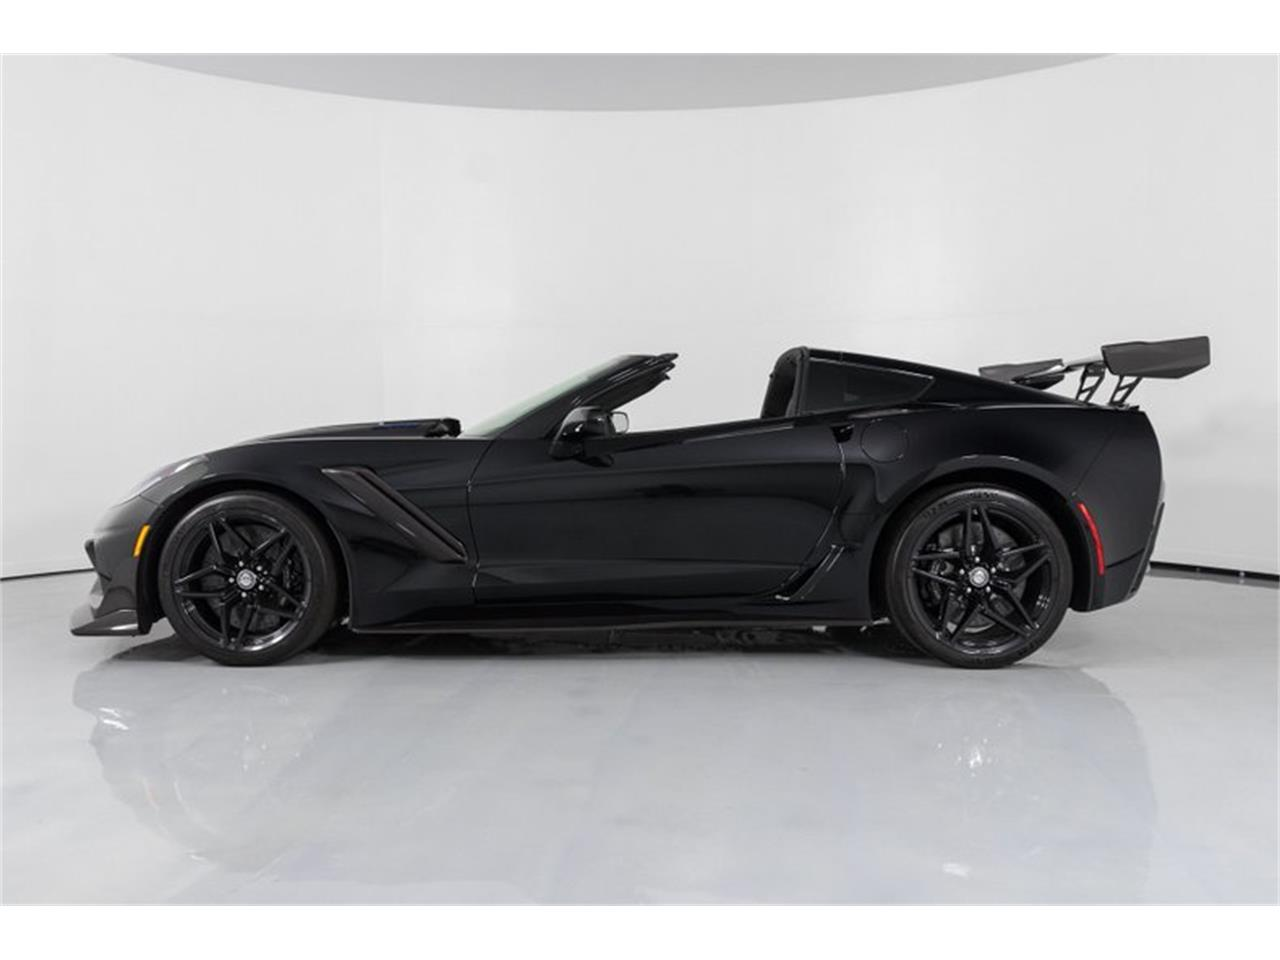 2019 Chevrolet Corvette ZR1 for sale in St. Charles, MO – photo 6